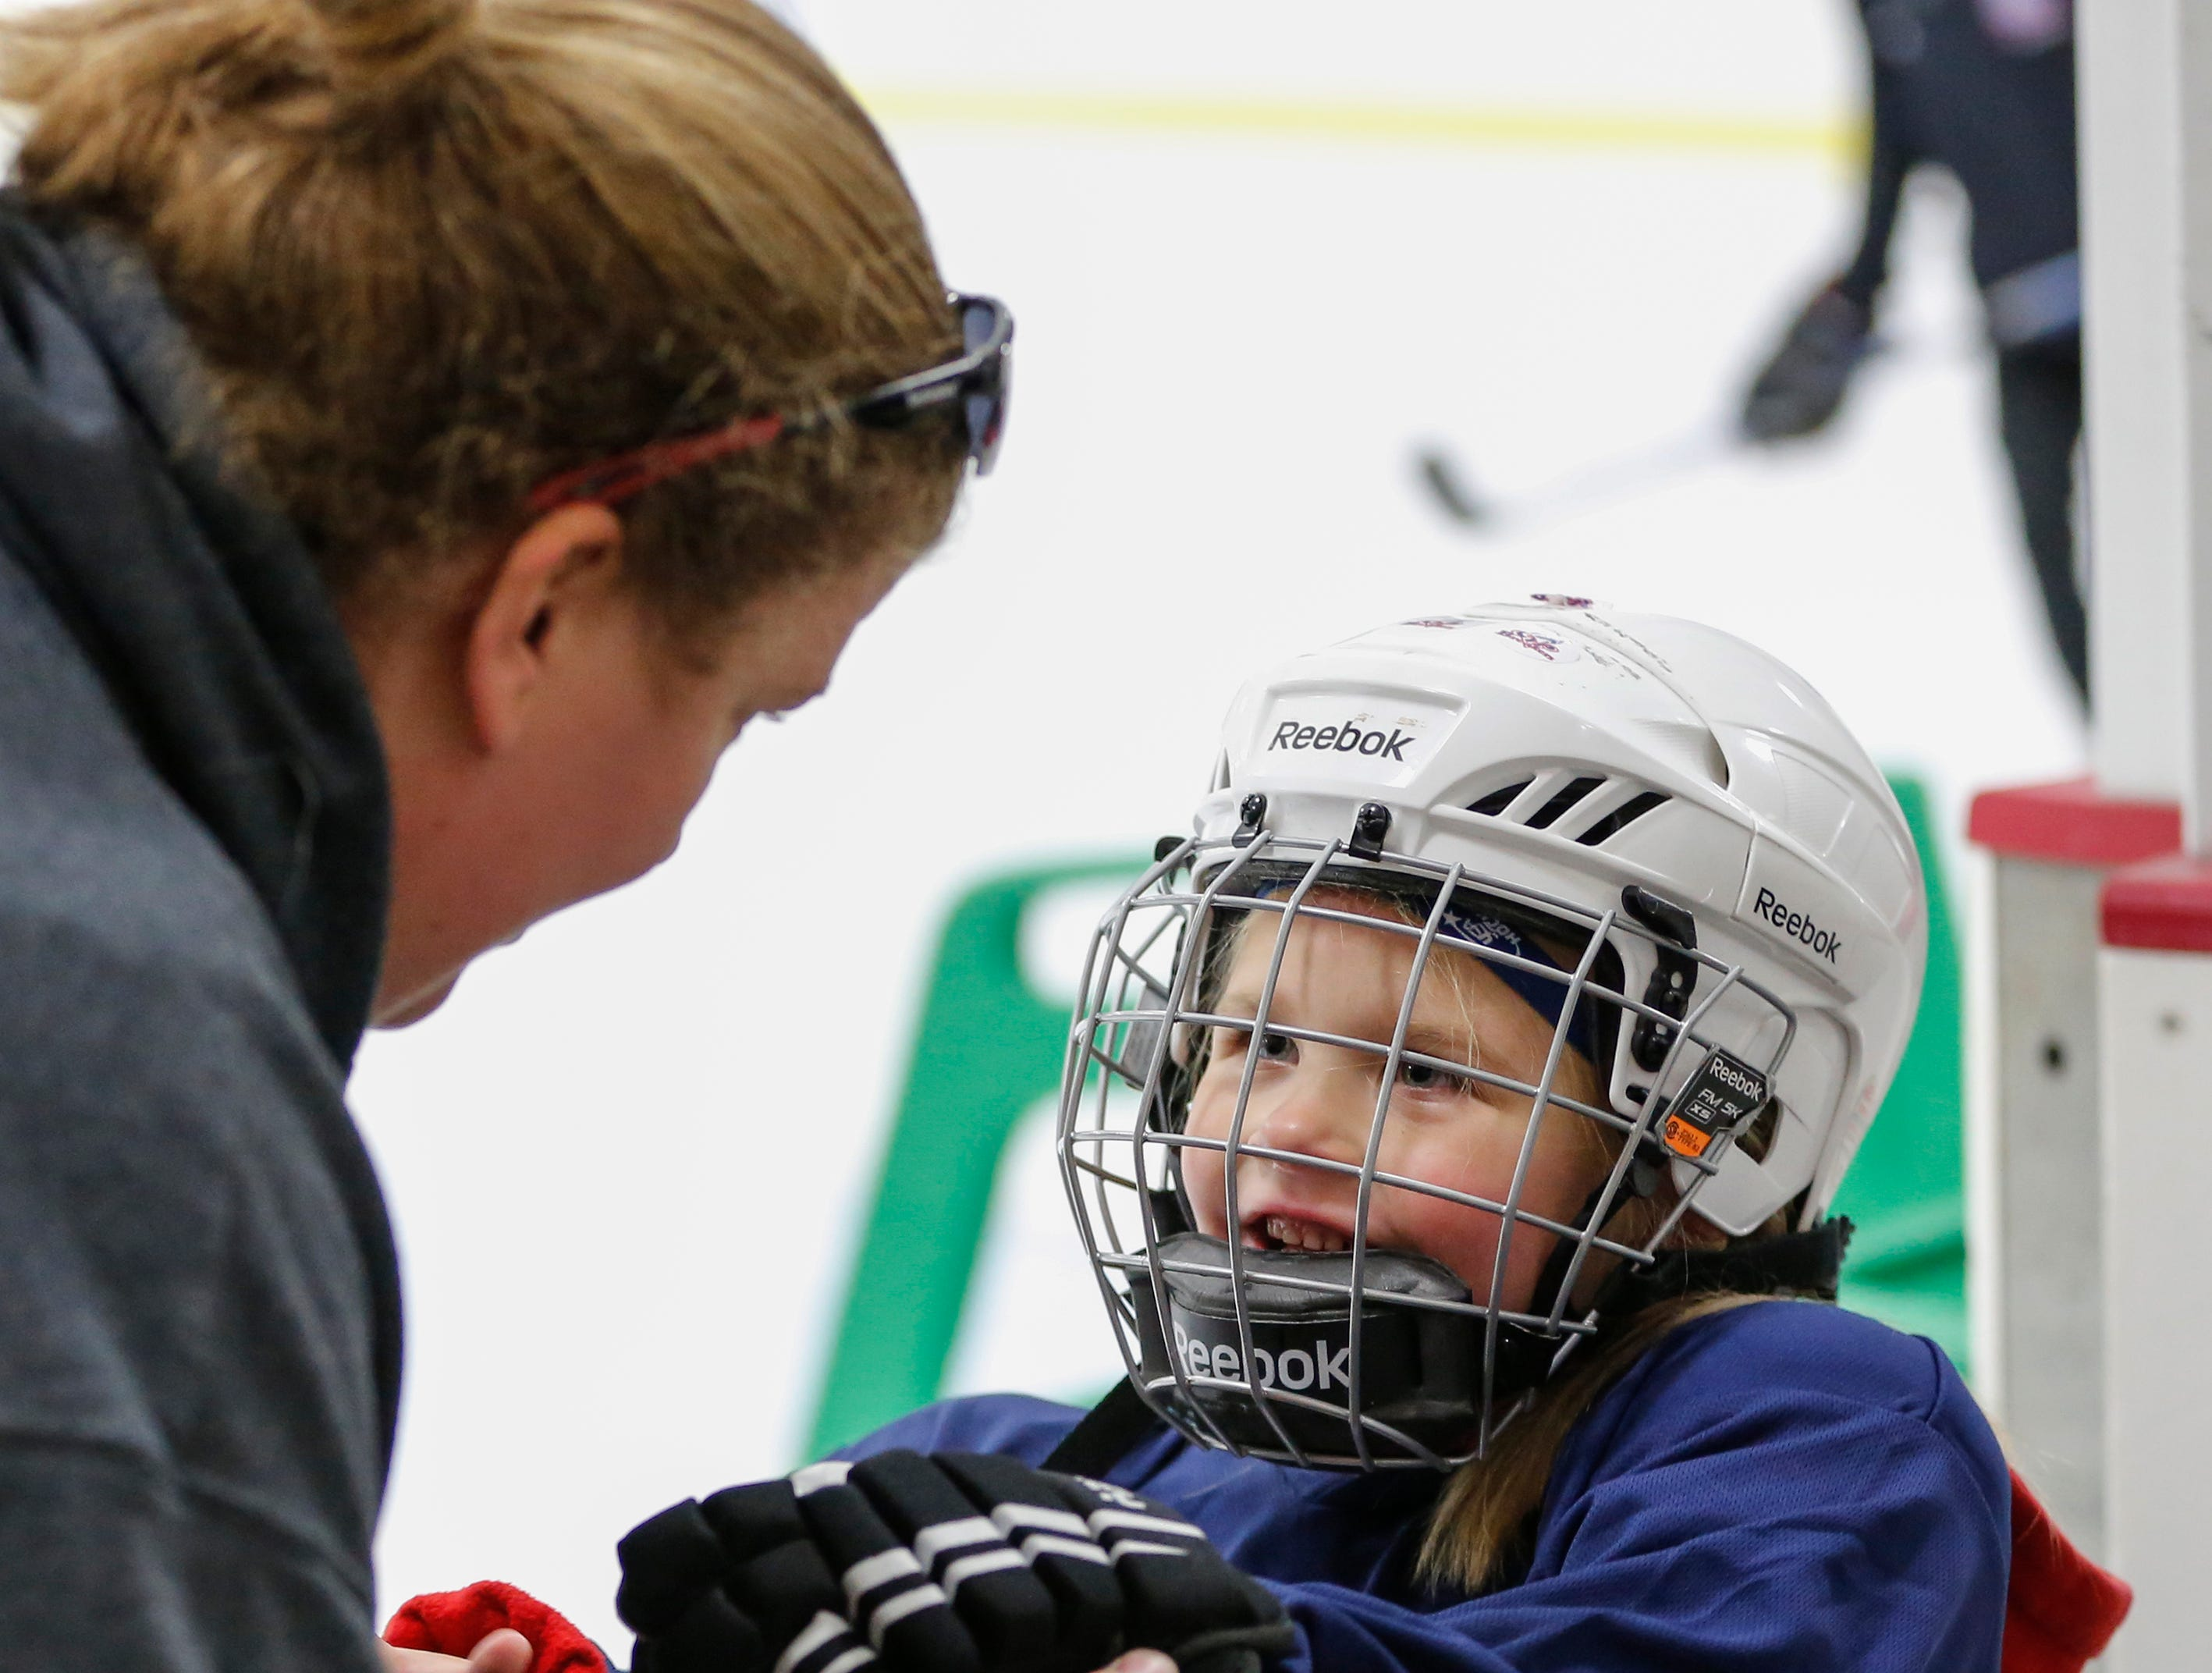 Cassidy Schloseky helps her daughter Zoe, 4, with her glove as she hits the ice for the first time during the Girls Try Hockey event at the County Ice Center Saturday, October 13, 2018, in Manitowoc, Wis. The Joshua Clark/USA TODAY NETWORK-Wisconsin